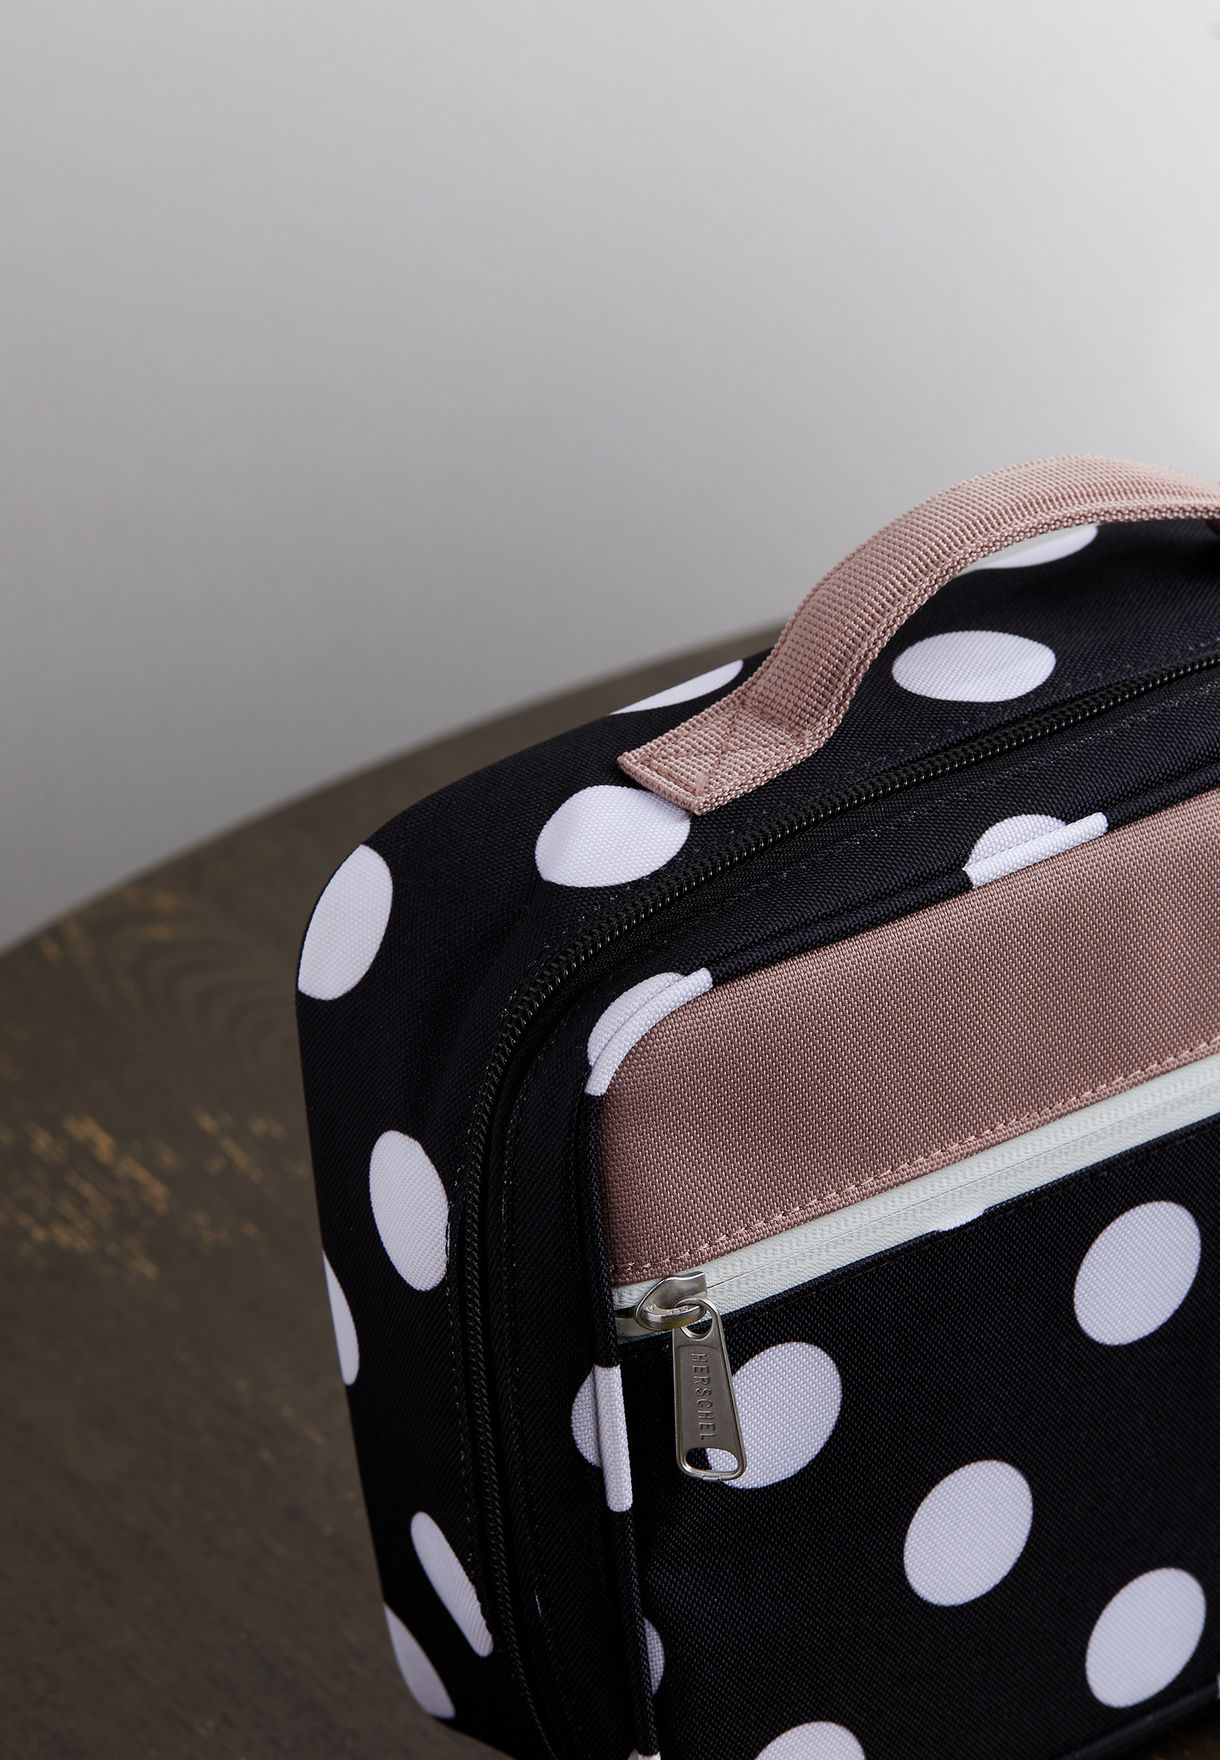 Polka Dot Pop Quiz Lunch Box